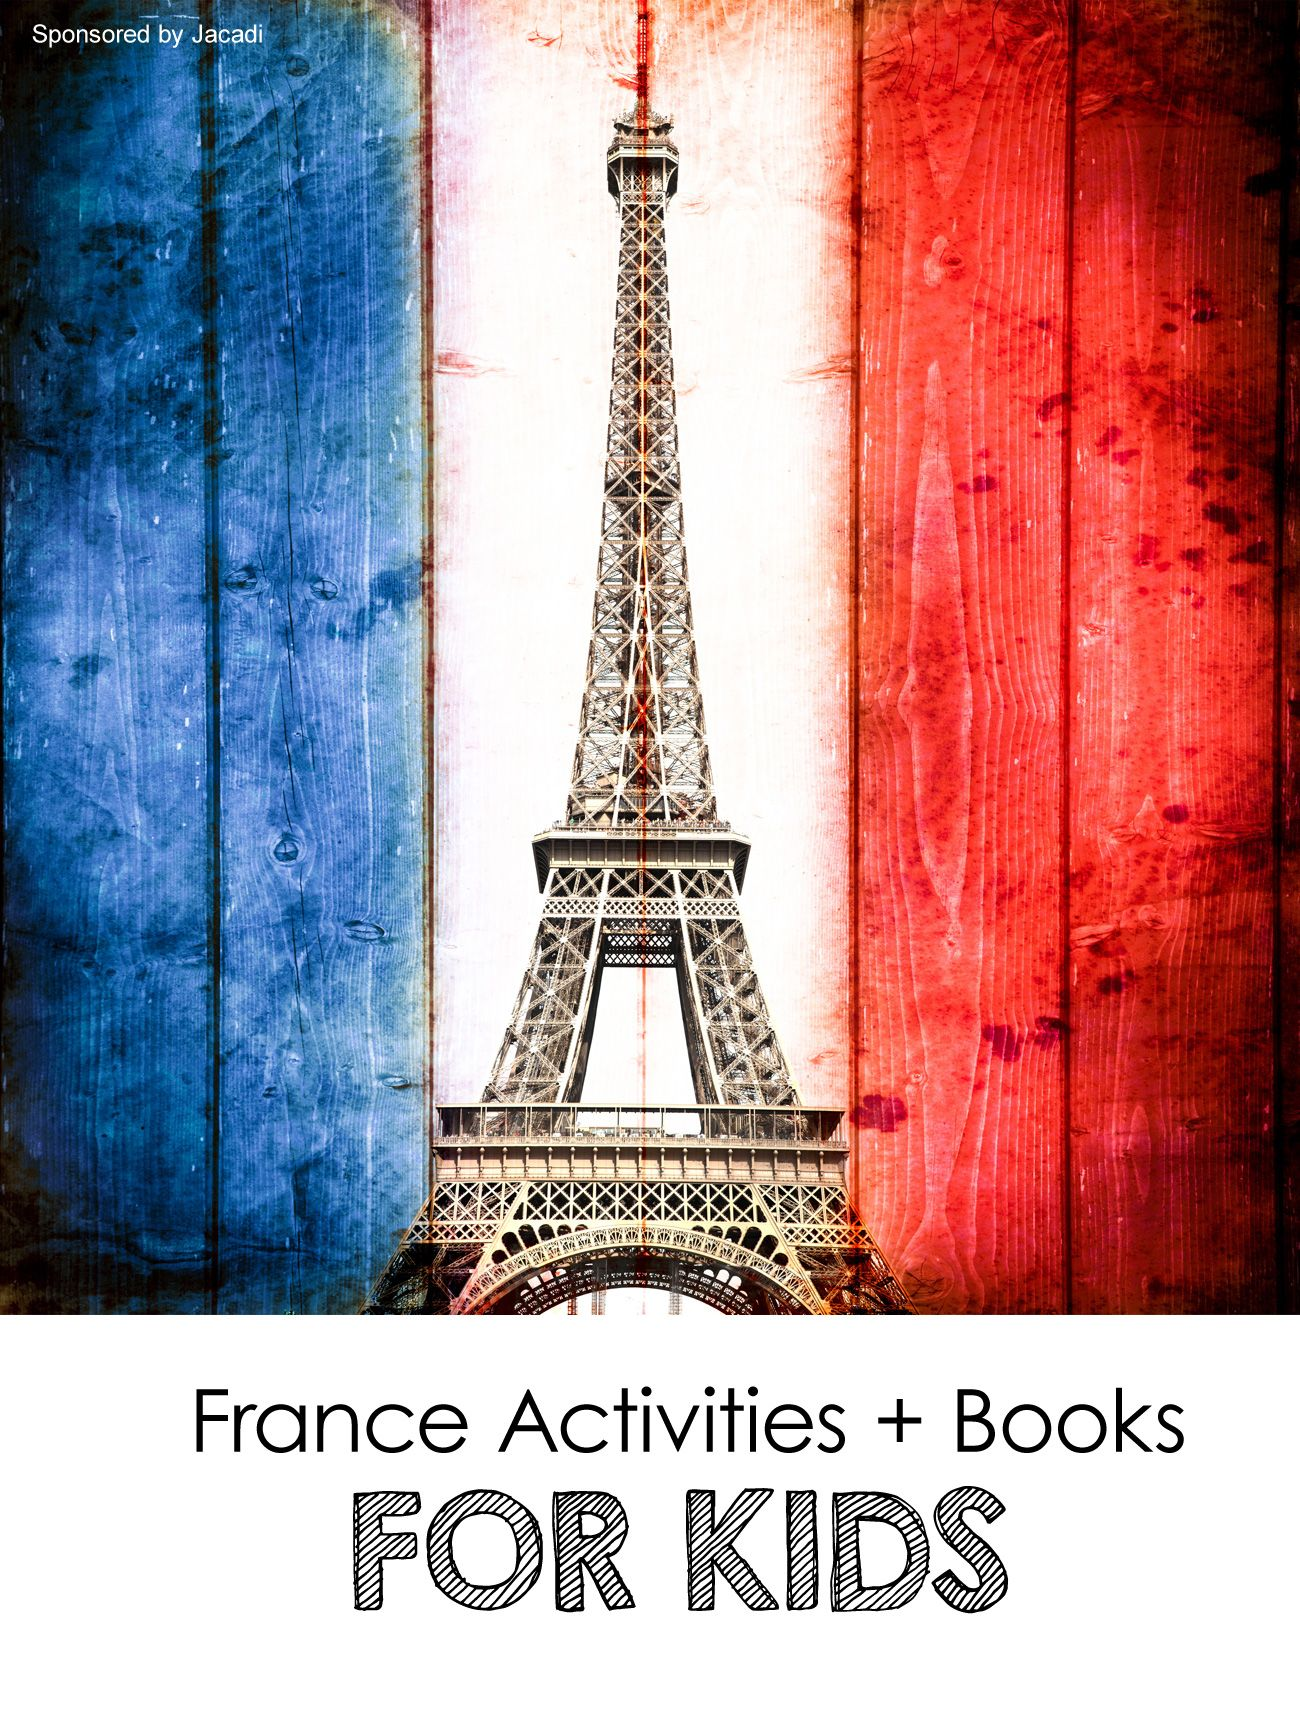 multicultural projects books france activities for children